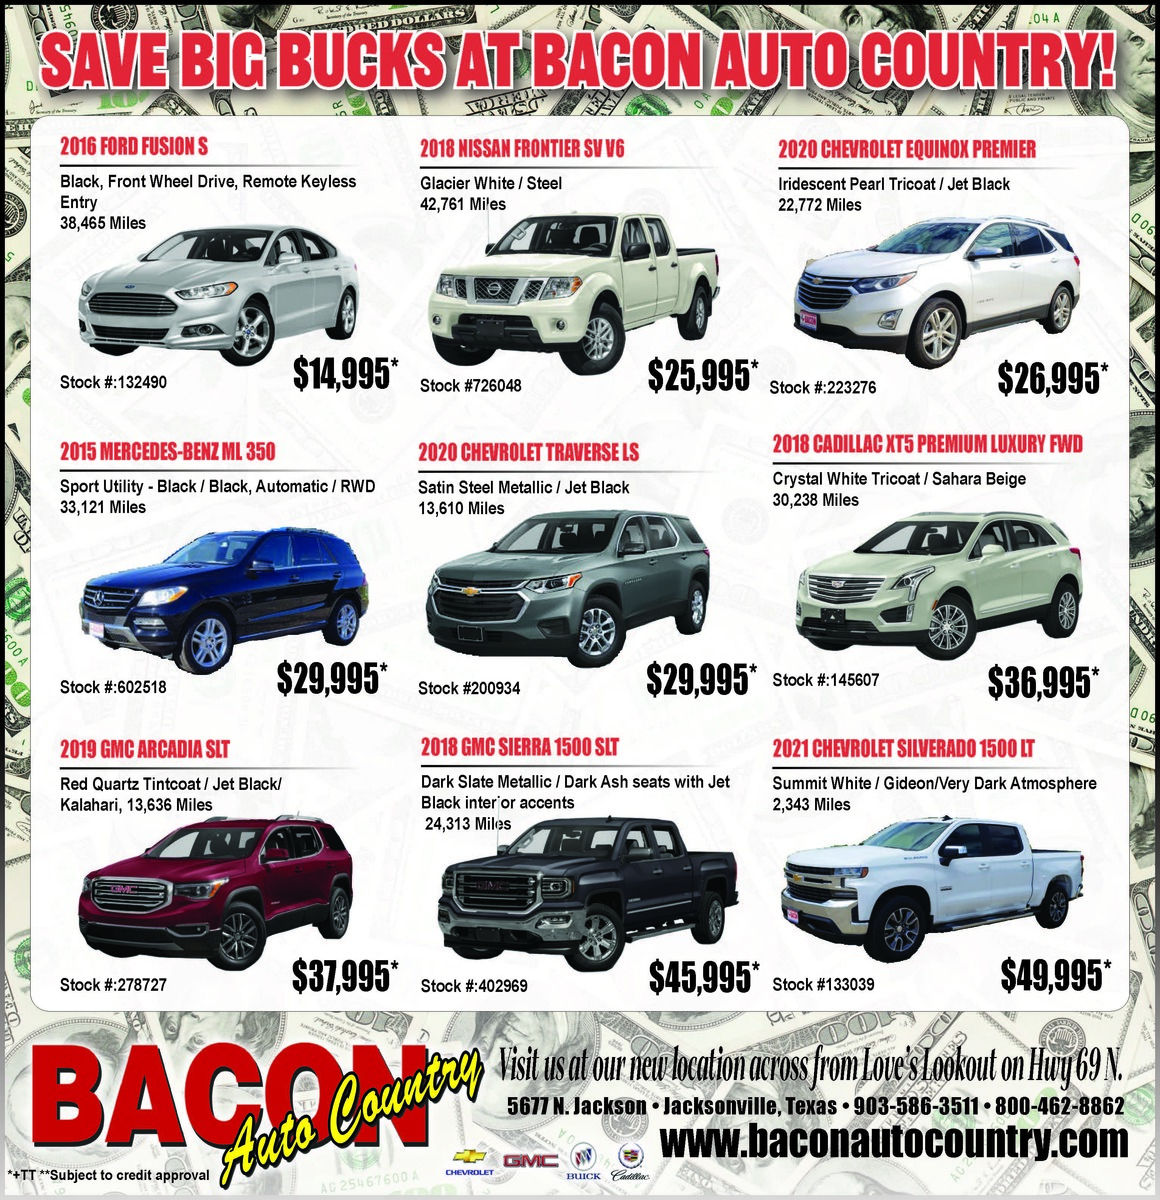 Save Big Bucks at Bacon Auto Country